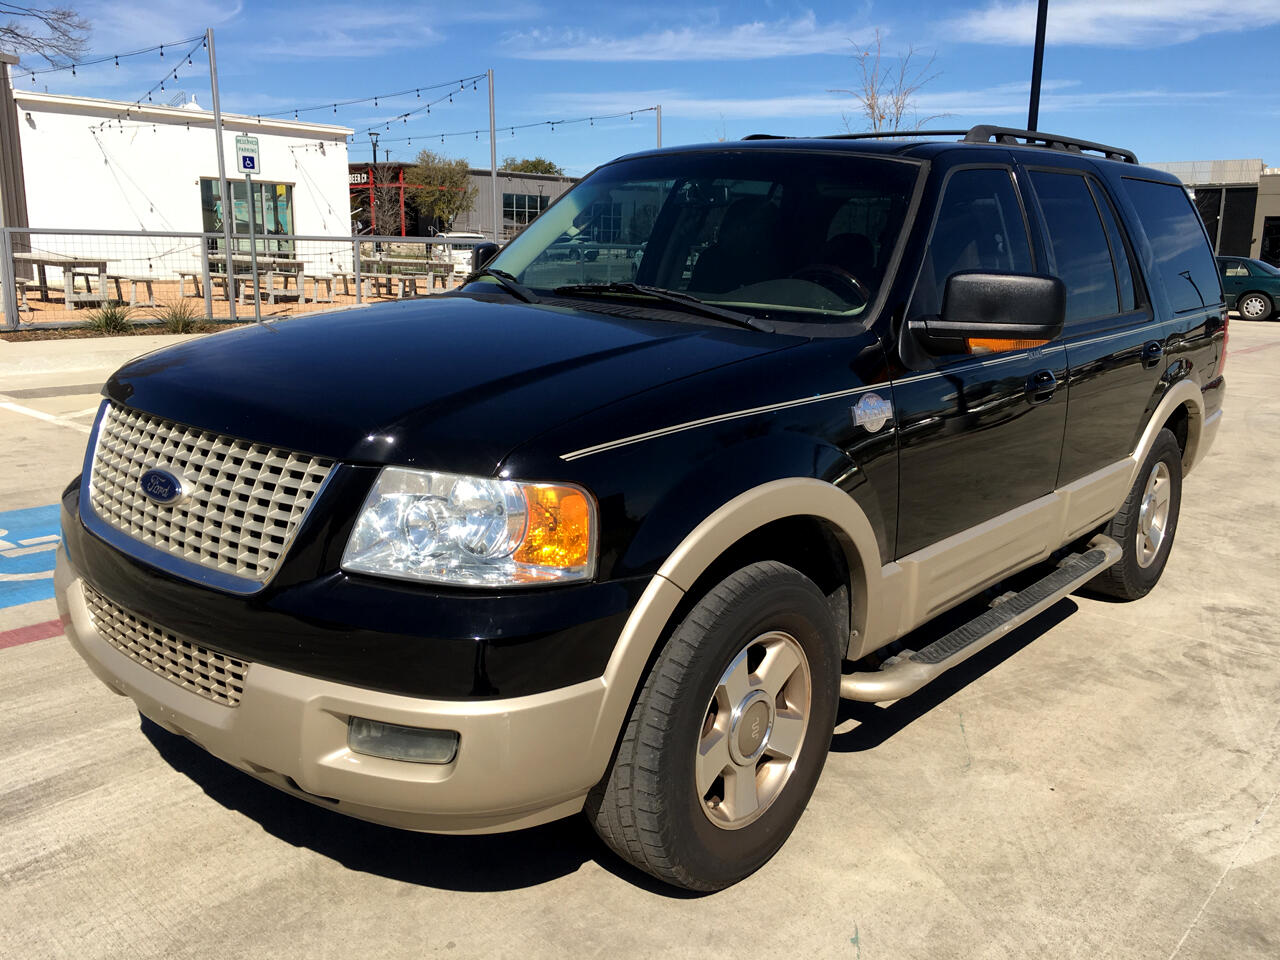 2006 Ford Expedition 2WD 4dr King Ranch